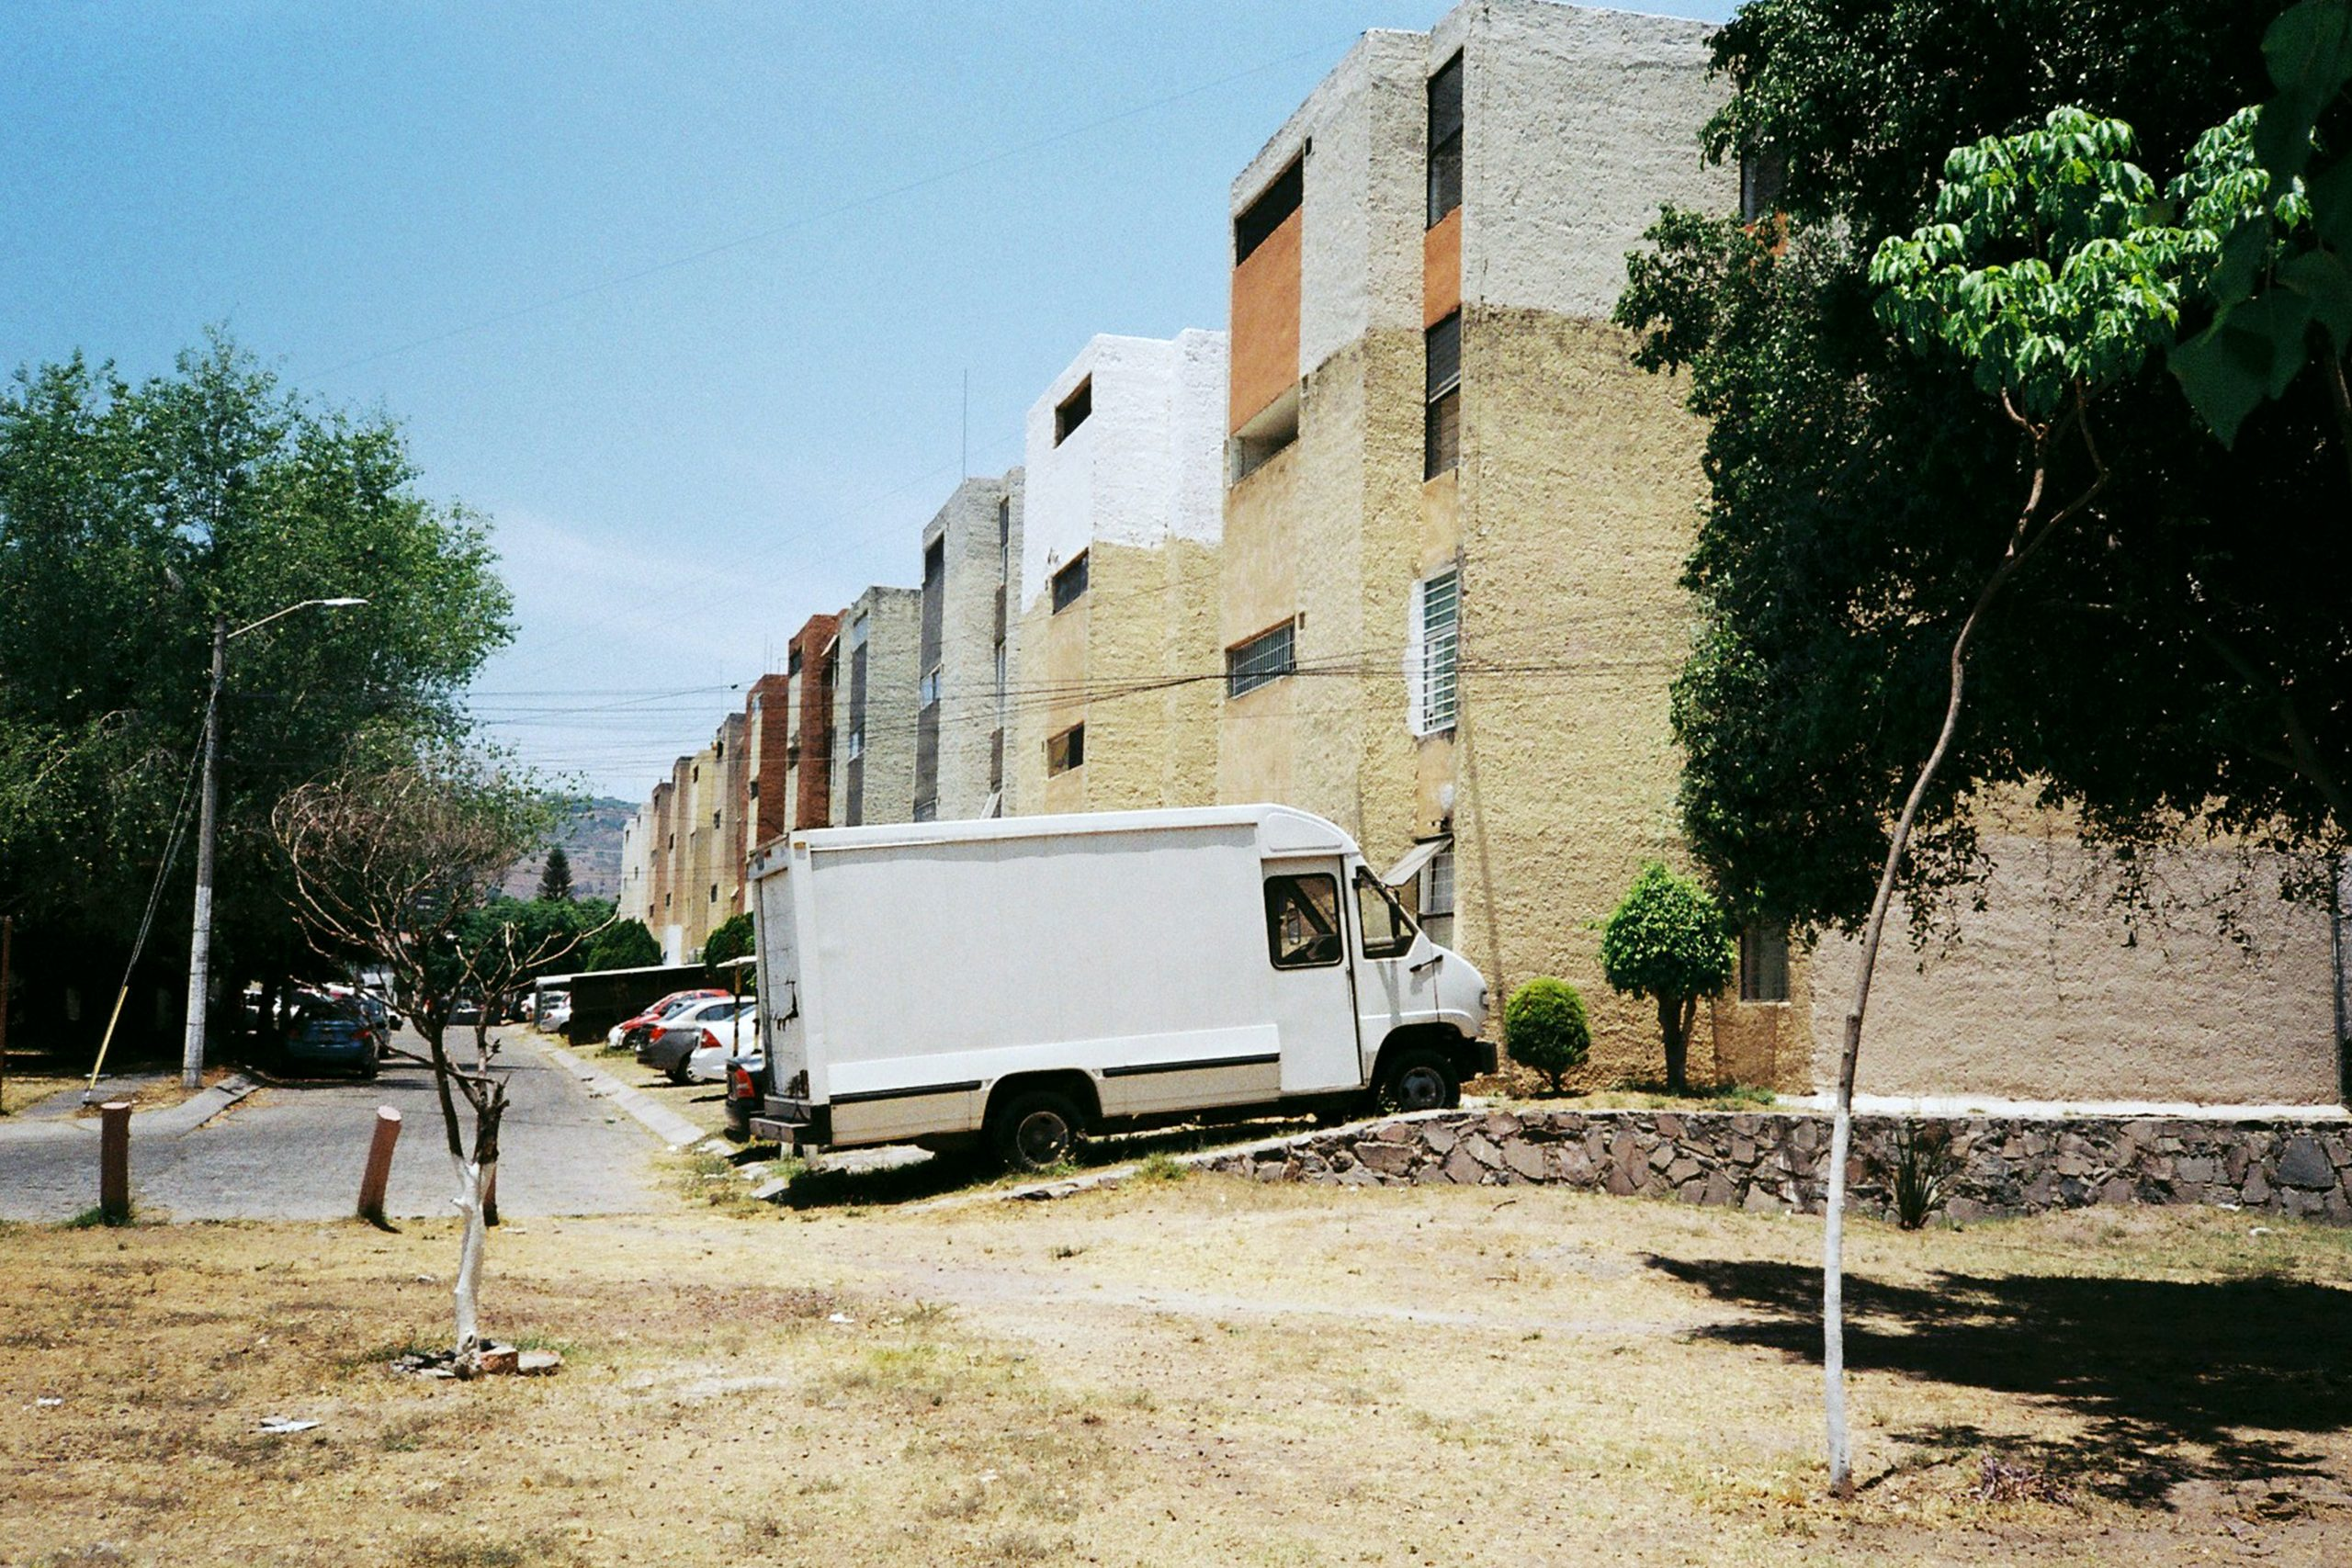 white van parked beside brown concrete building during daytime